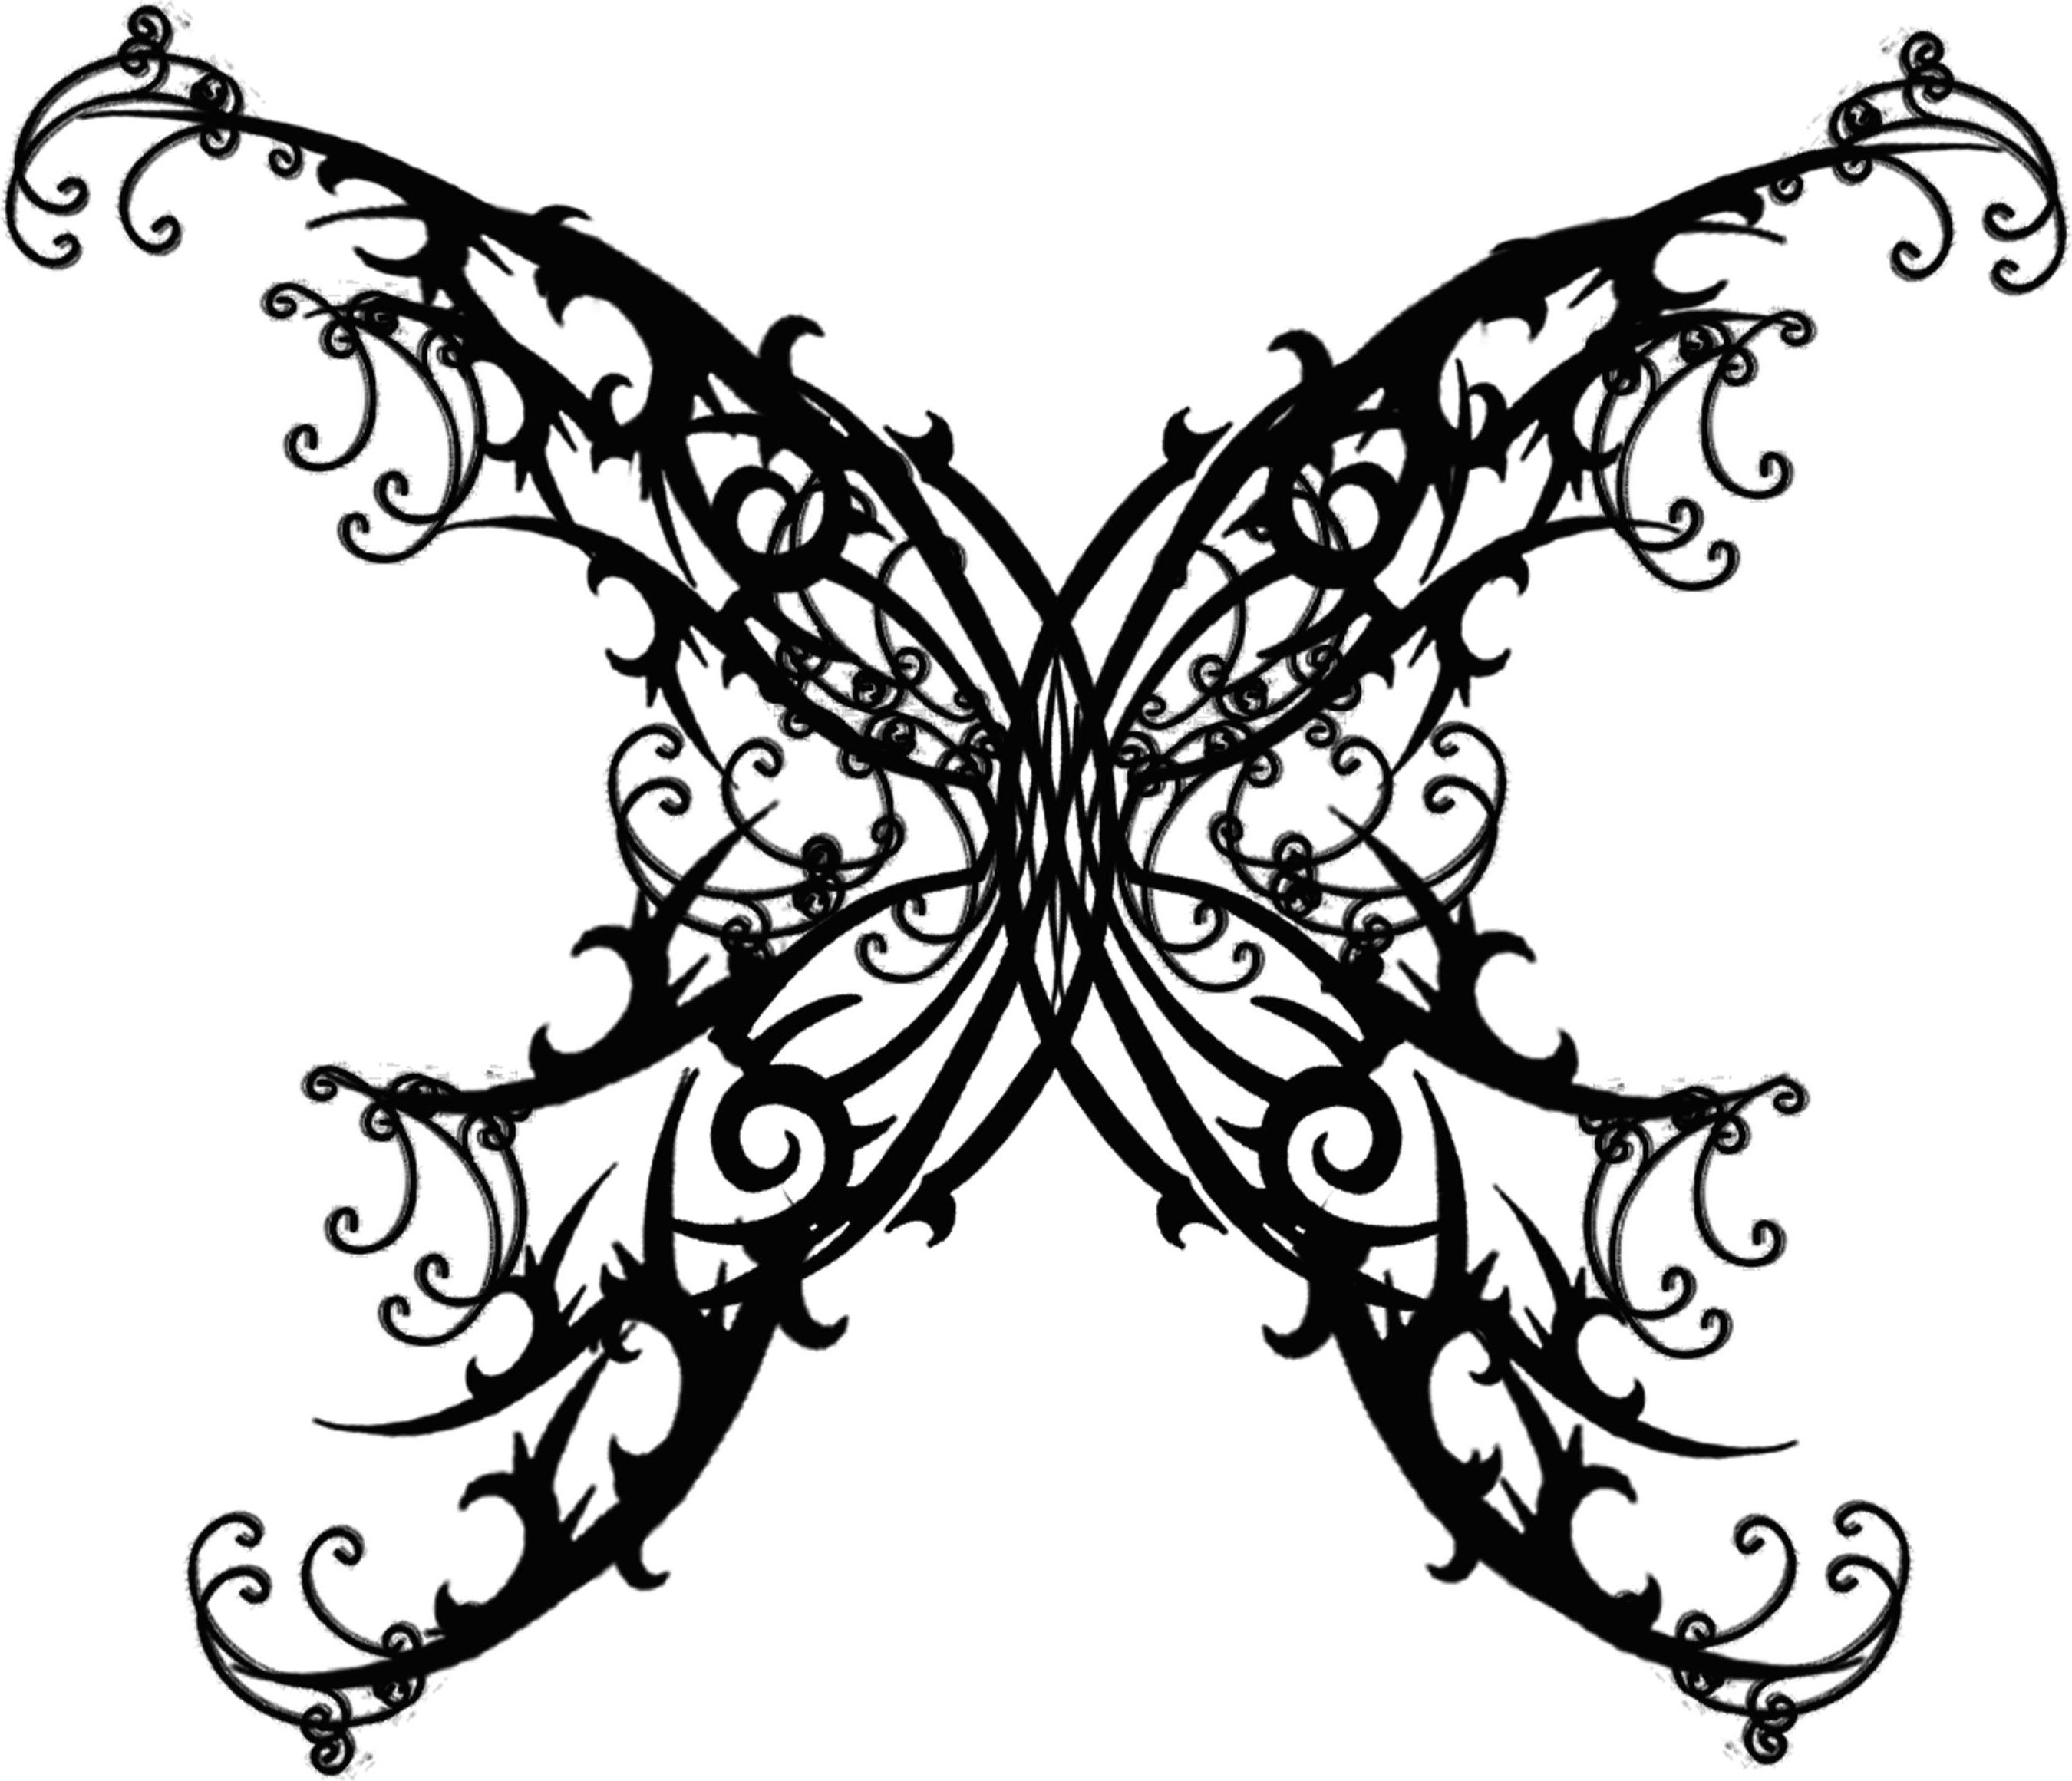 Gothic Rose Tattoo Designs Cool Tattoos Tribal Butterfly Tattoo Butterfly Wing Tattoo Gothic Tattoo,Electrical Control Panel Design Calculations